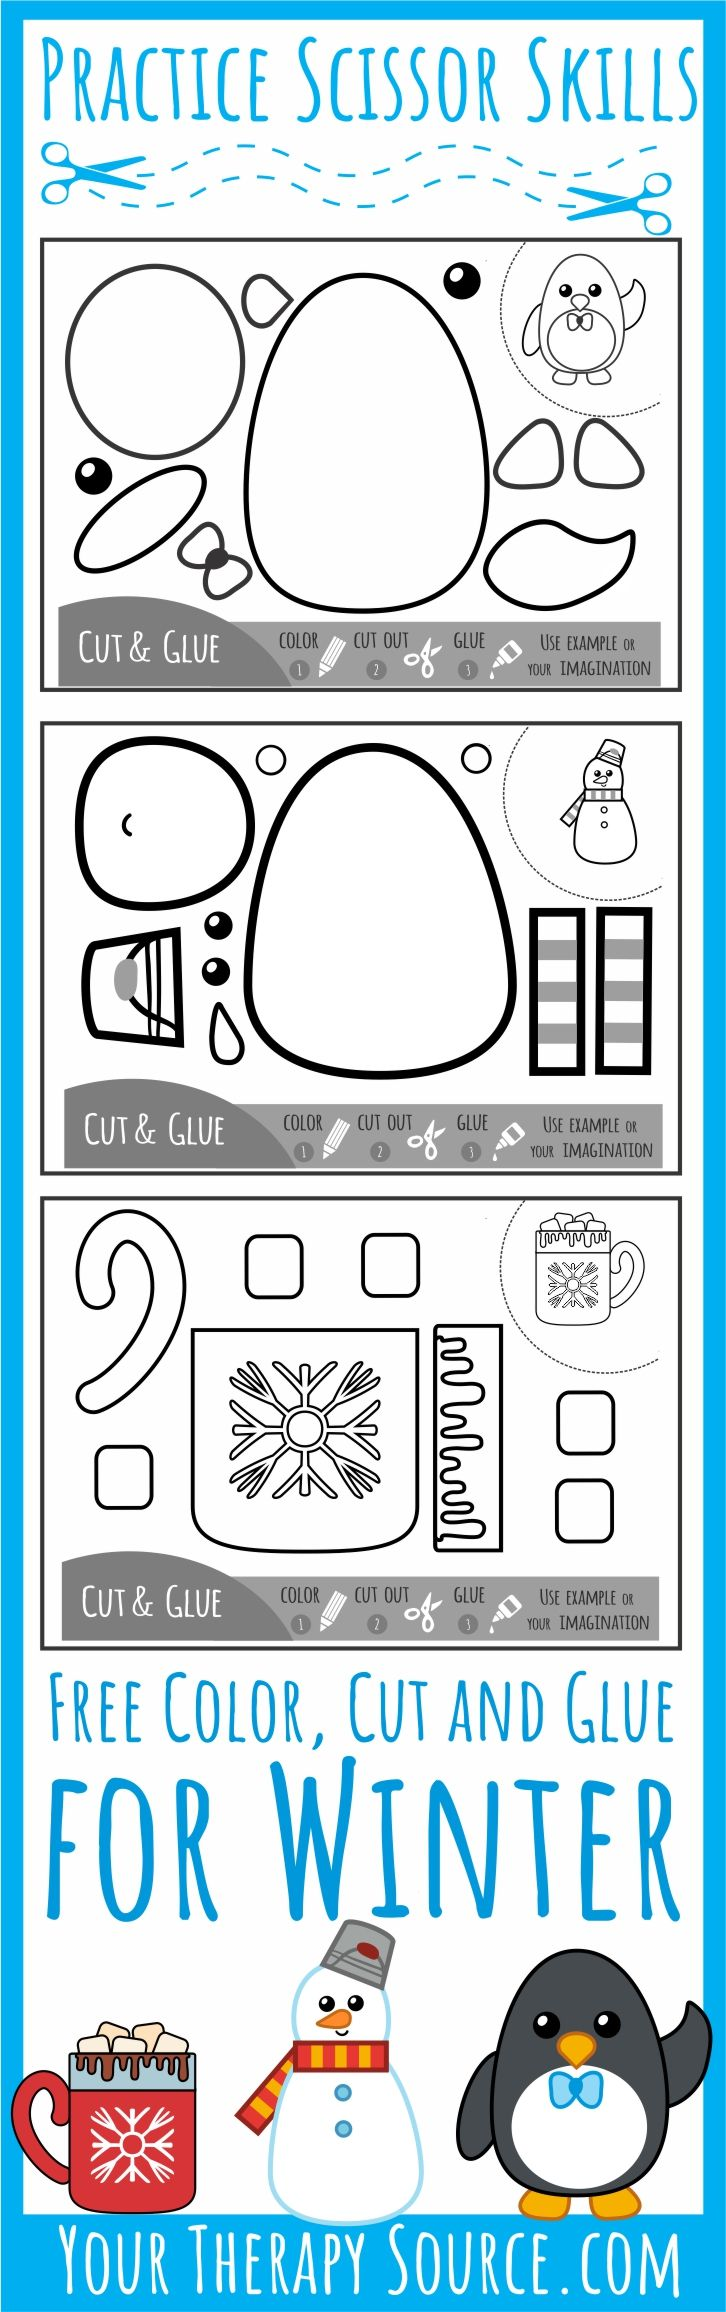 Color Cut Glue Scissor Practice for Winter - 3 FREE printable black and white pages to practice scissor skills, sequencing and more from Your Therapy Source.